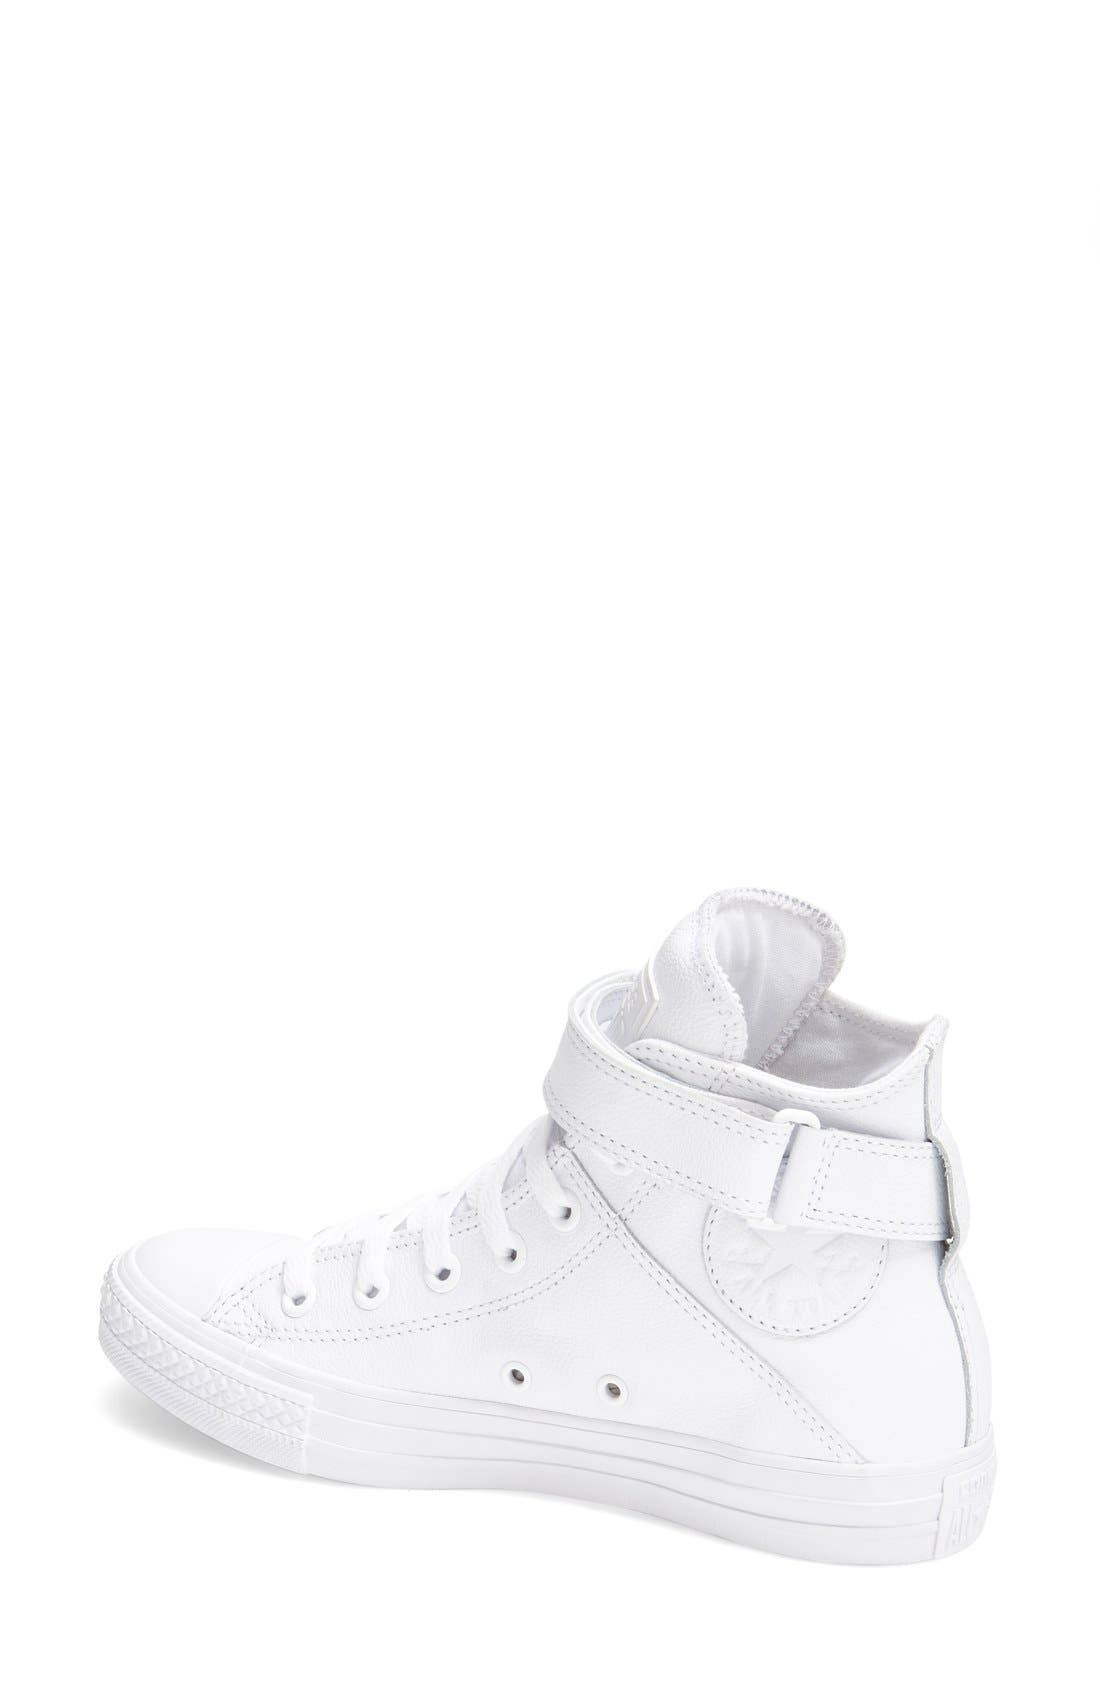 Alternate Image 2  - Converse Chuck Taylor® All Star® 'Brea' Leather High Top Sneaker (Women)